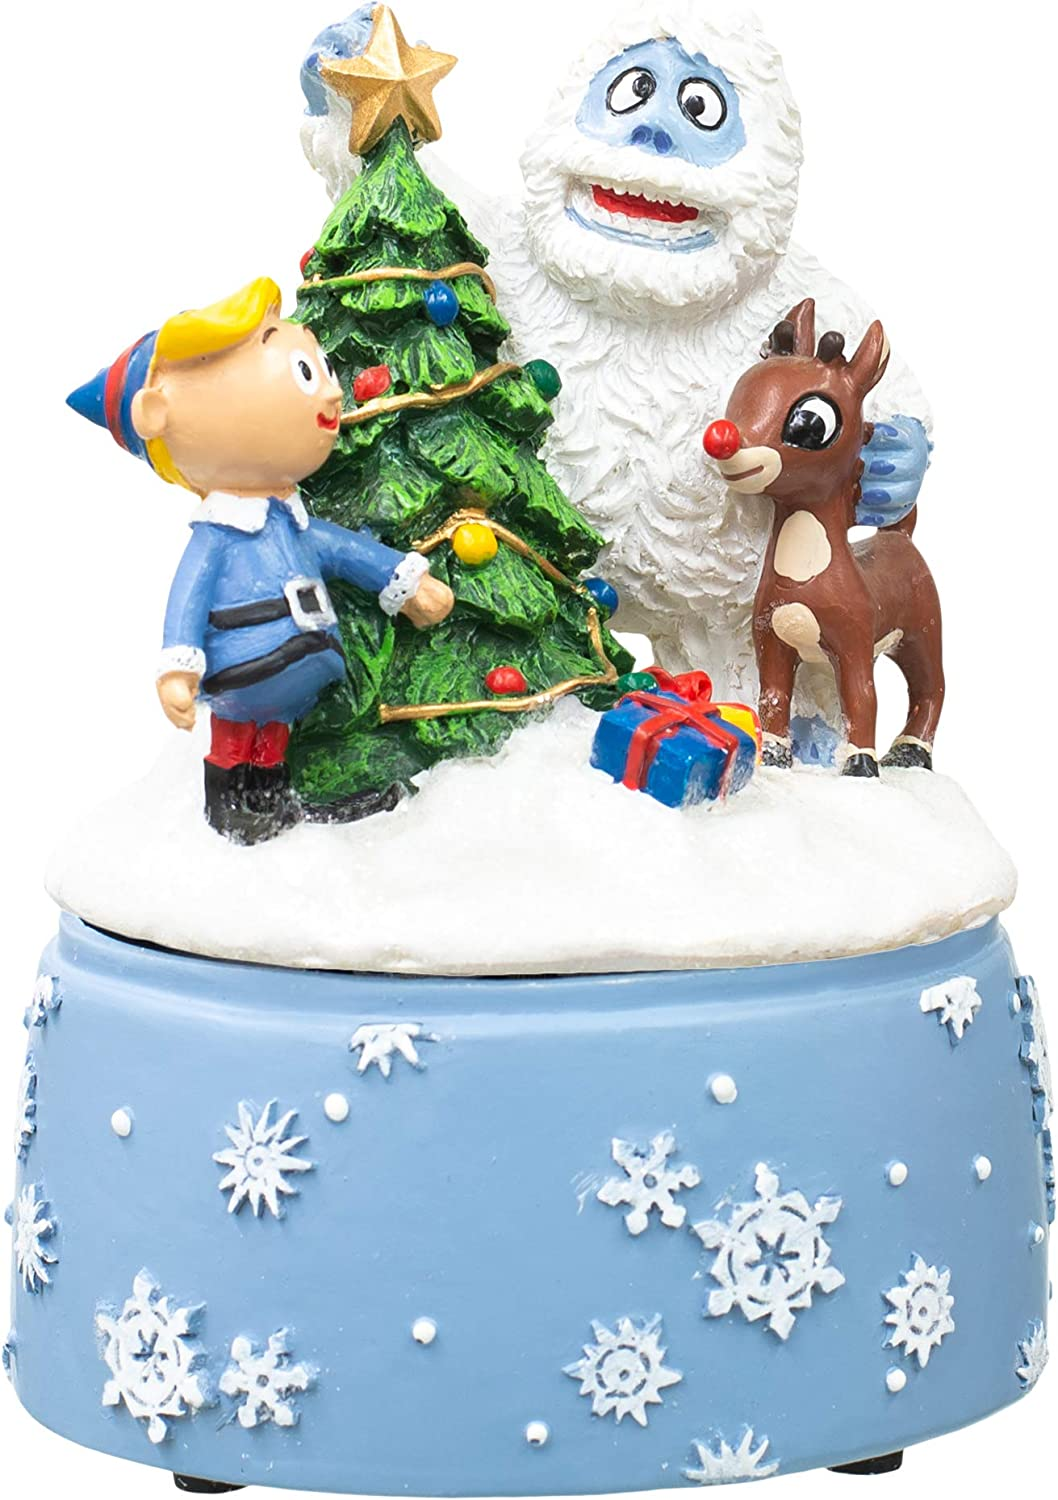 Rudolph and Friends Arctic Blue 7 x 5 Resin Holiday Musical Figurine